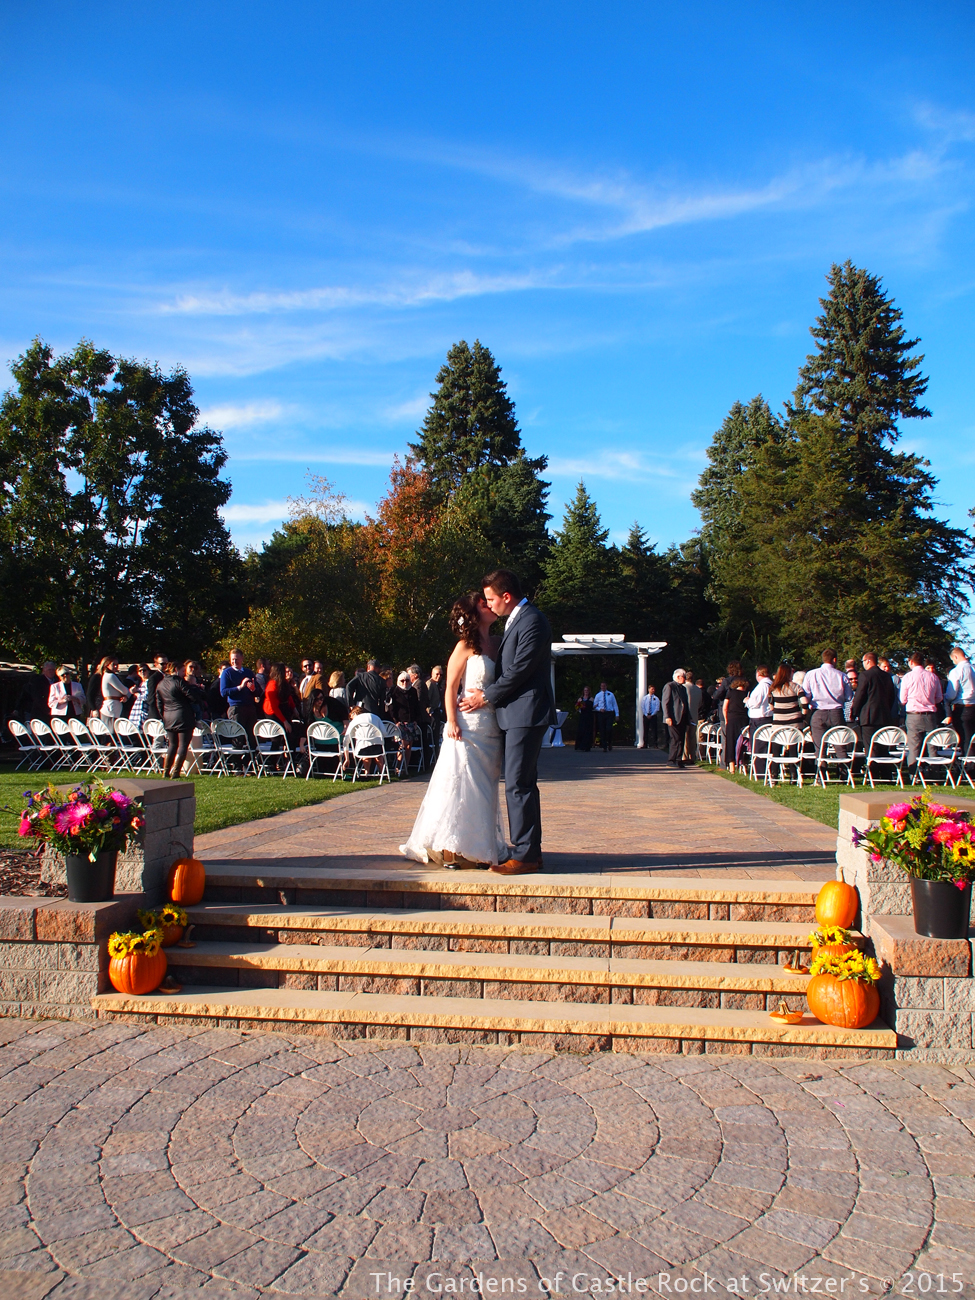 The Gardens of Castle Rock | Bright Beautiful Wedding Day!